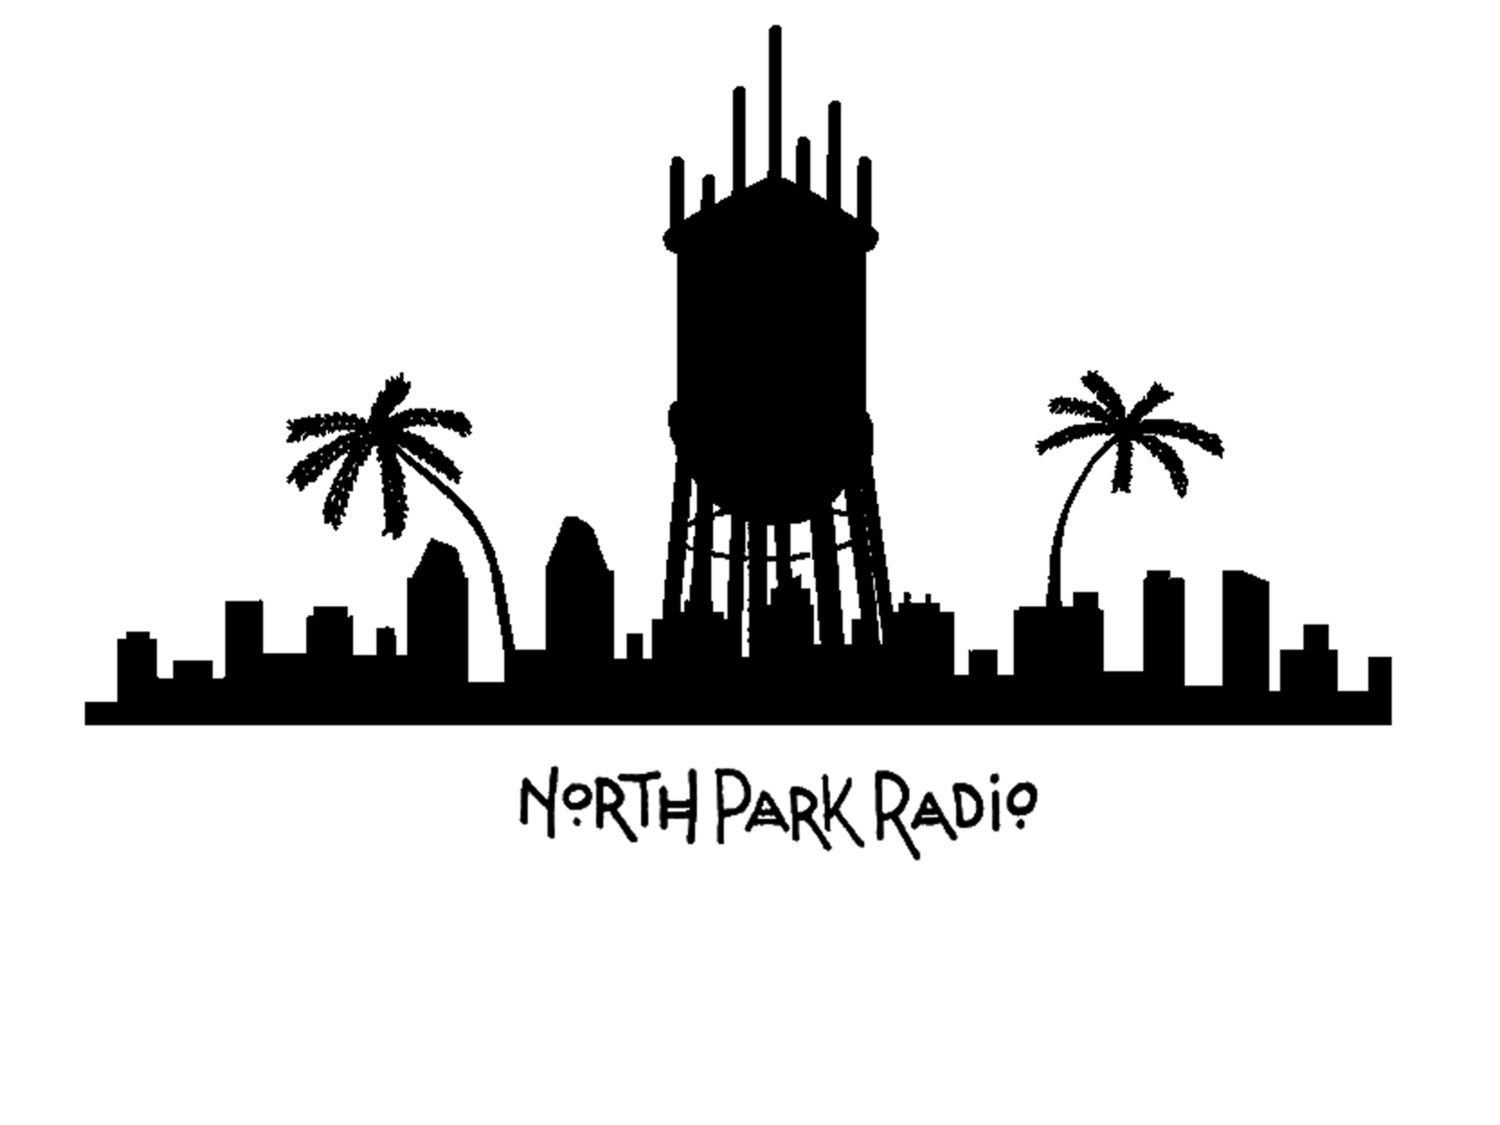 North Park Radio